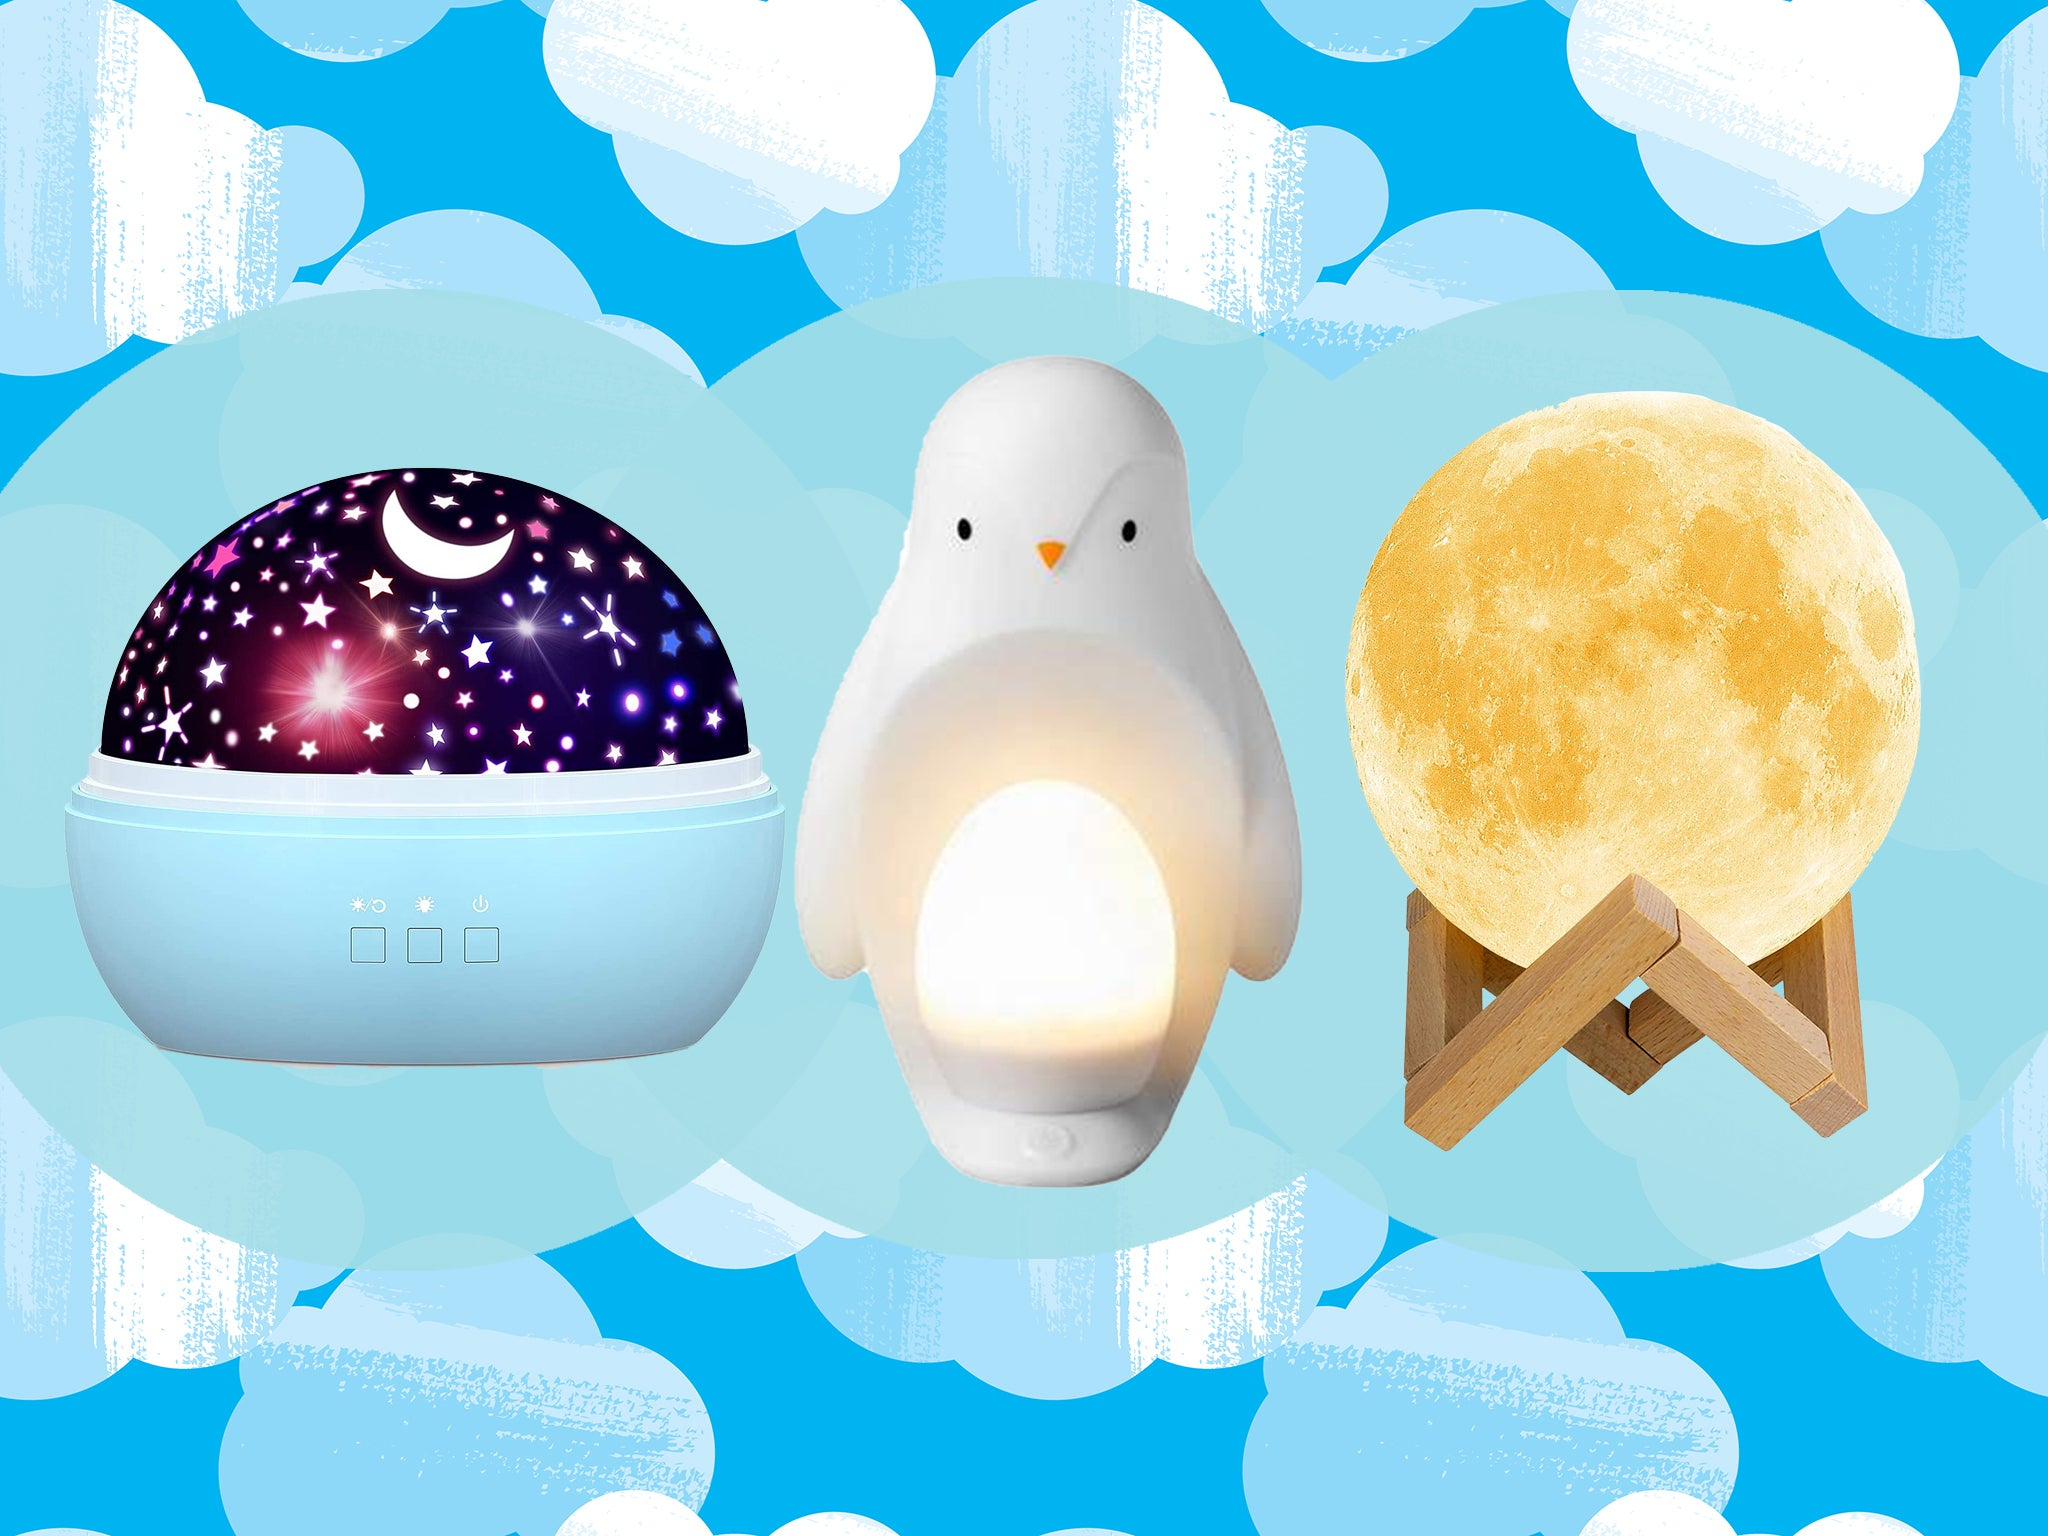 Best kids' lamps to brighten up their bedside table or desk